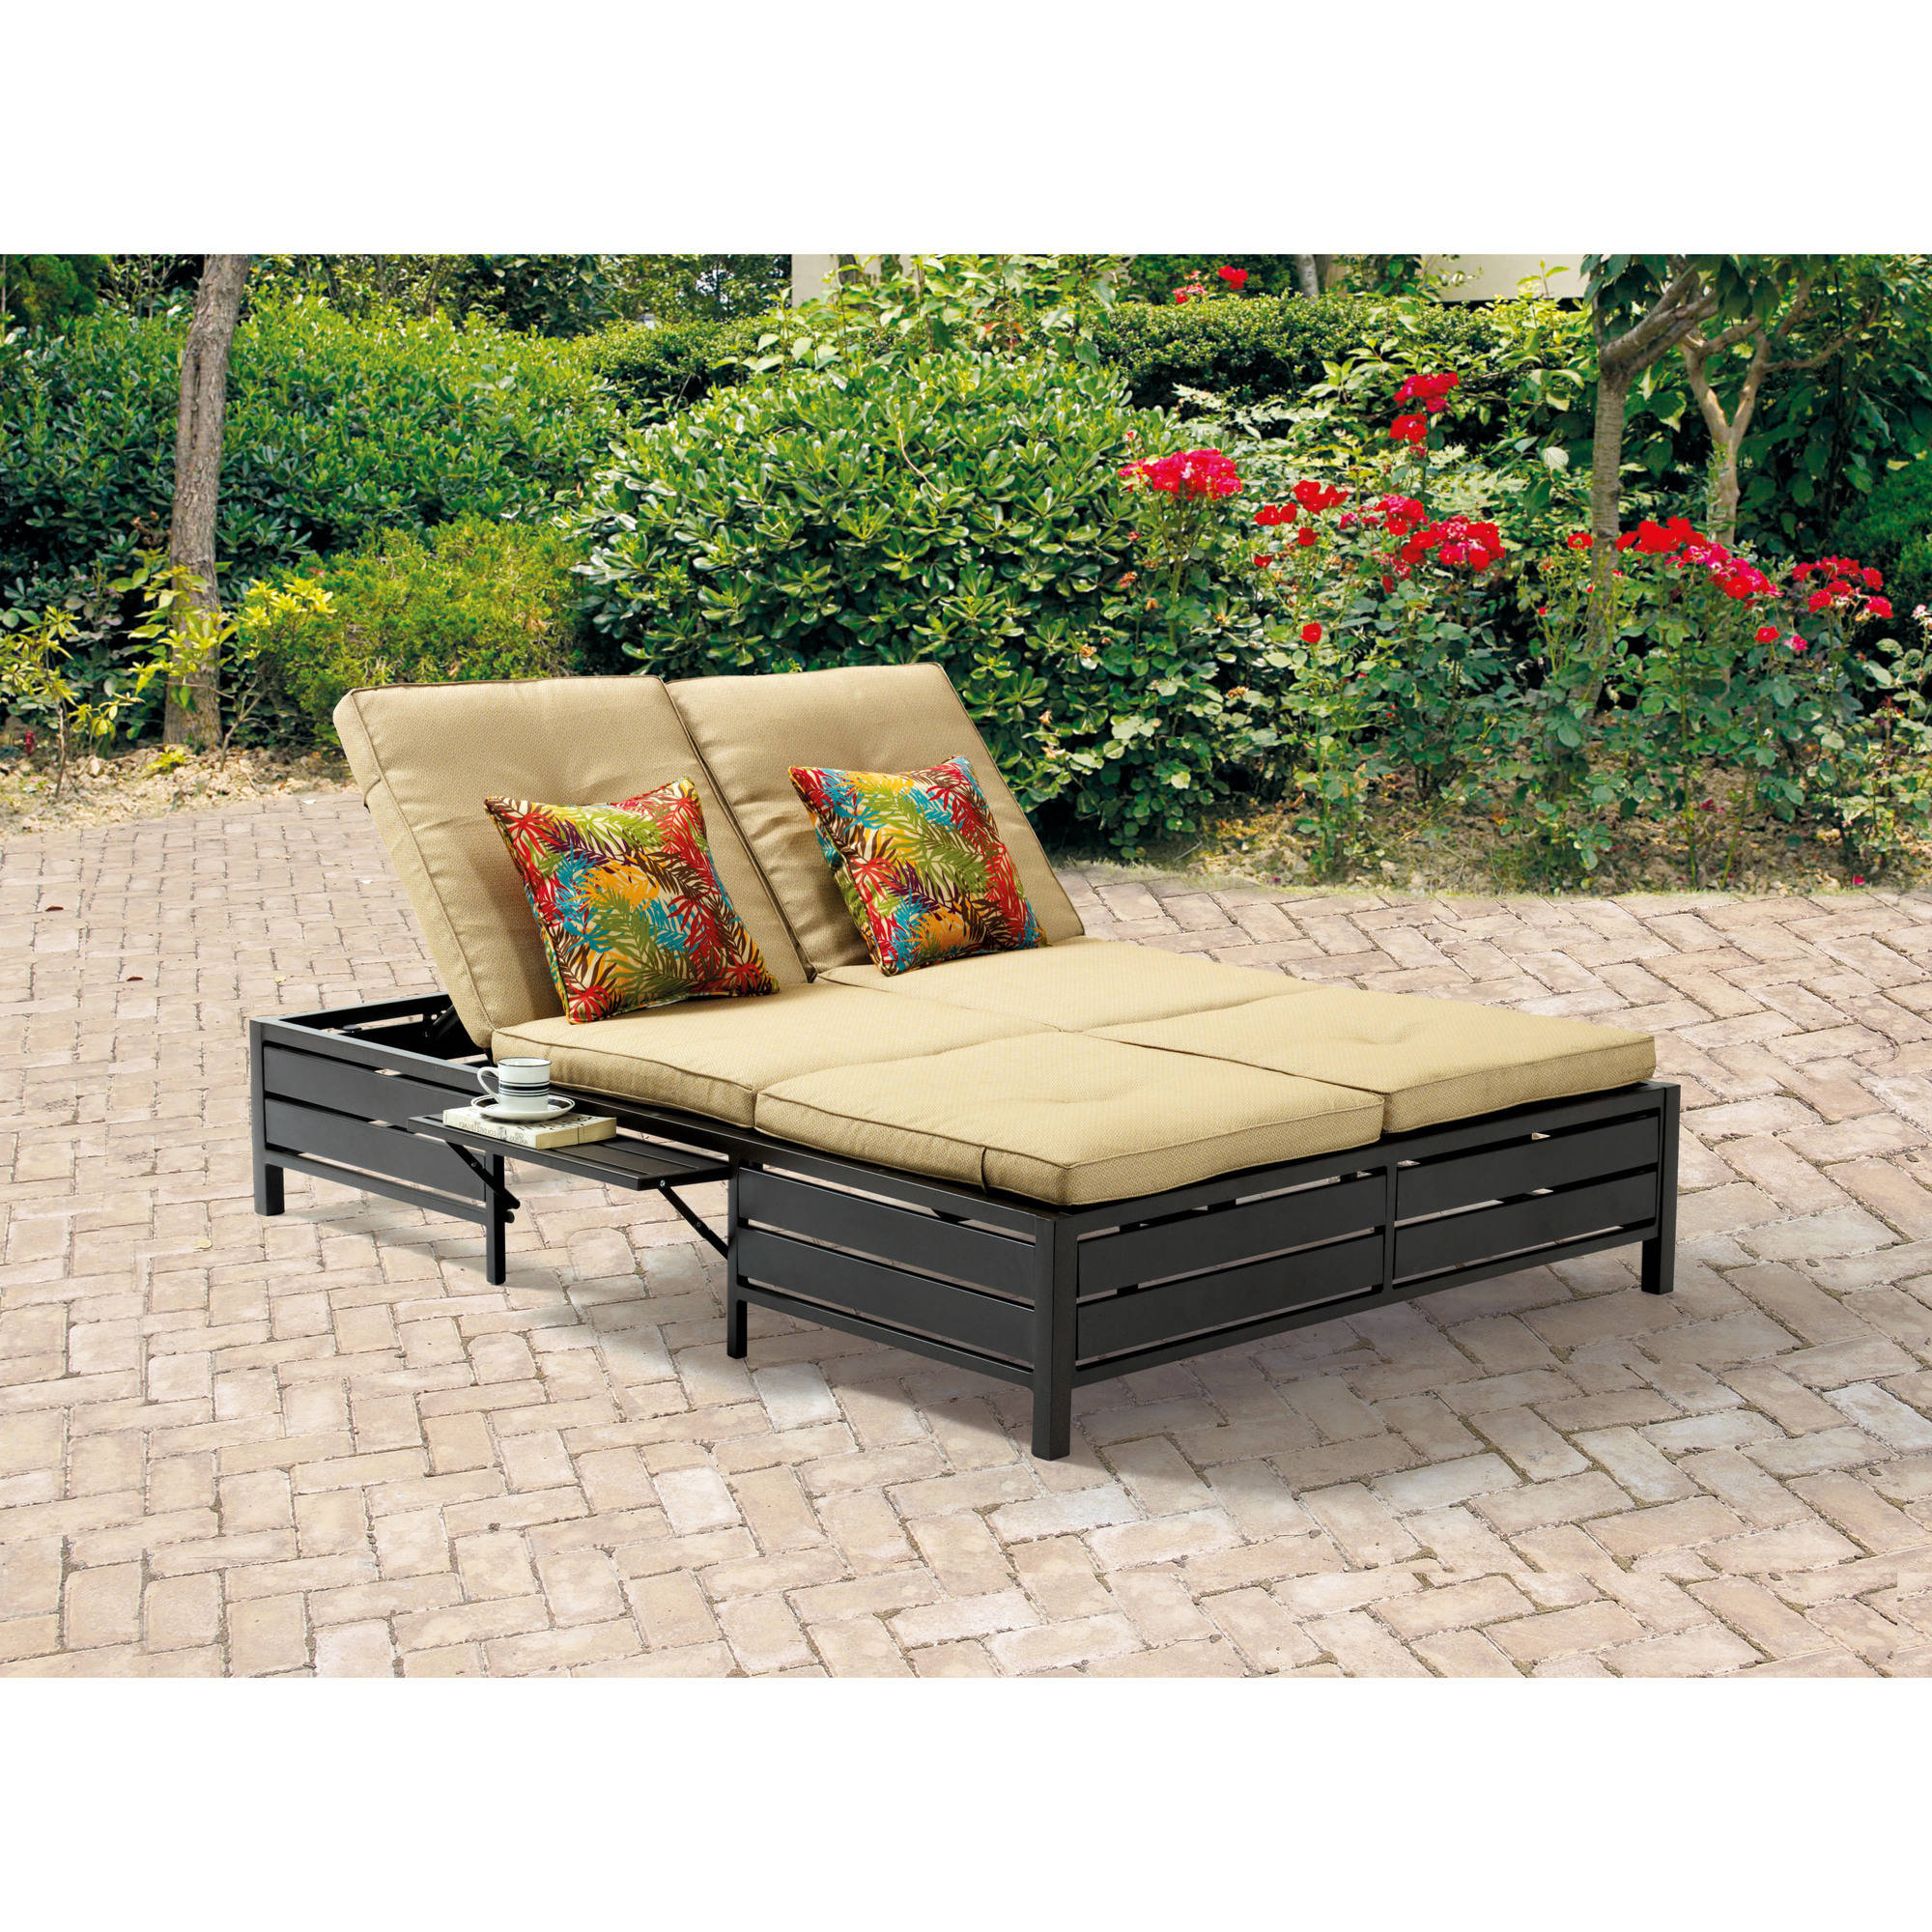 Famous Cosco Outdoor Aluminum Chaise Lounge Chairs Within Cosco Outdoor Adjustable Aluminum Chaise Lounge Chair Serene Ridge Set, 2 Pack, Dark Brown (View 5 of 25)